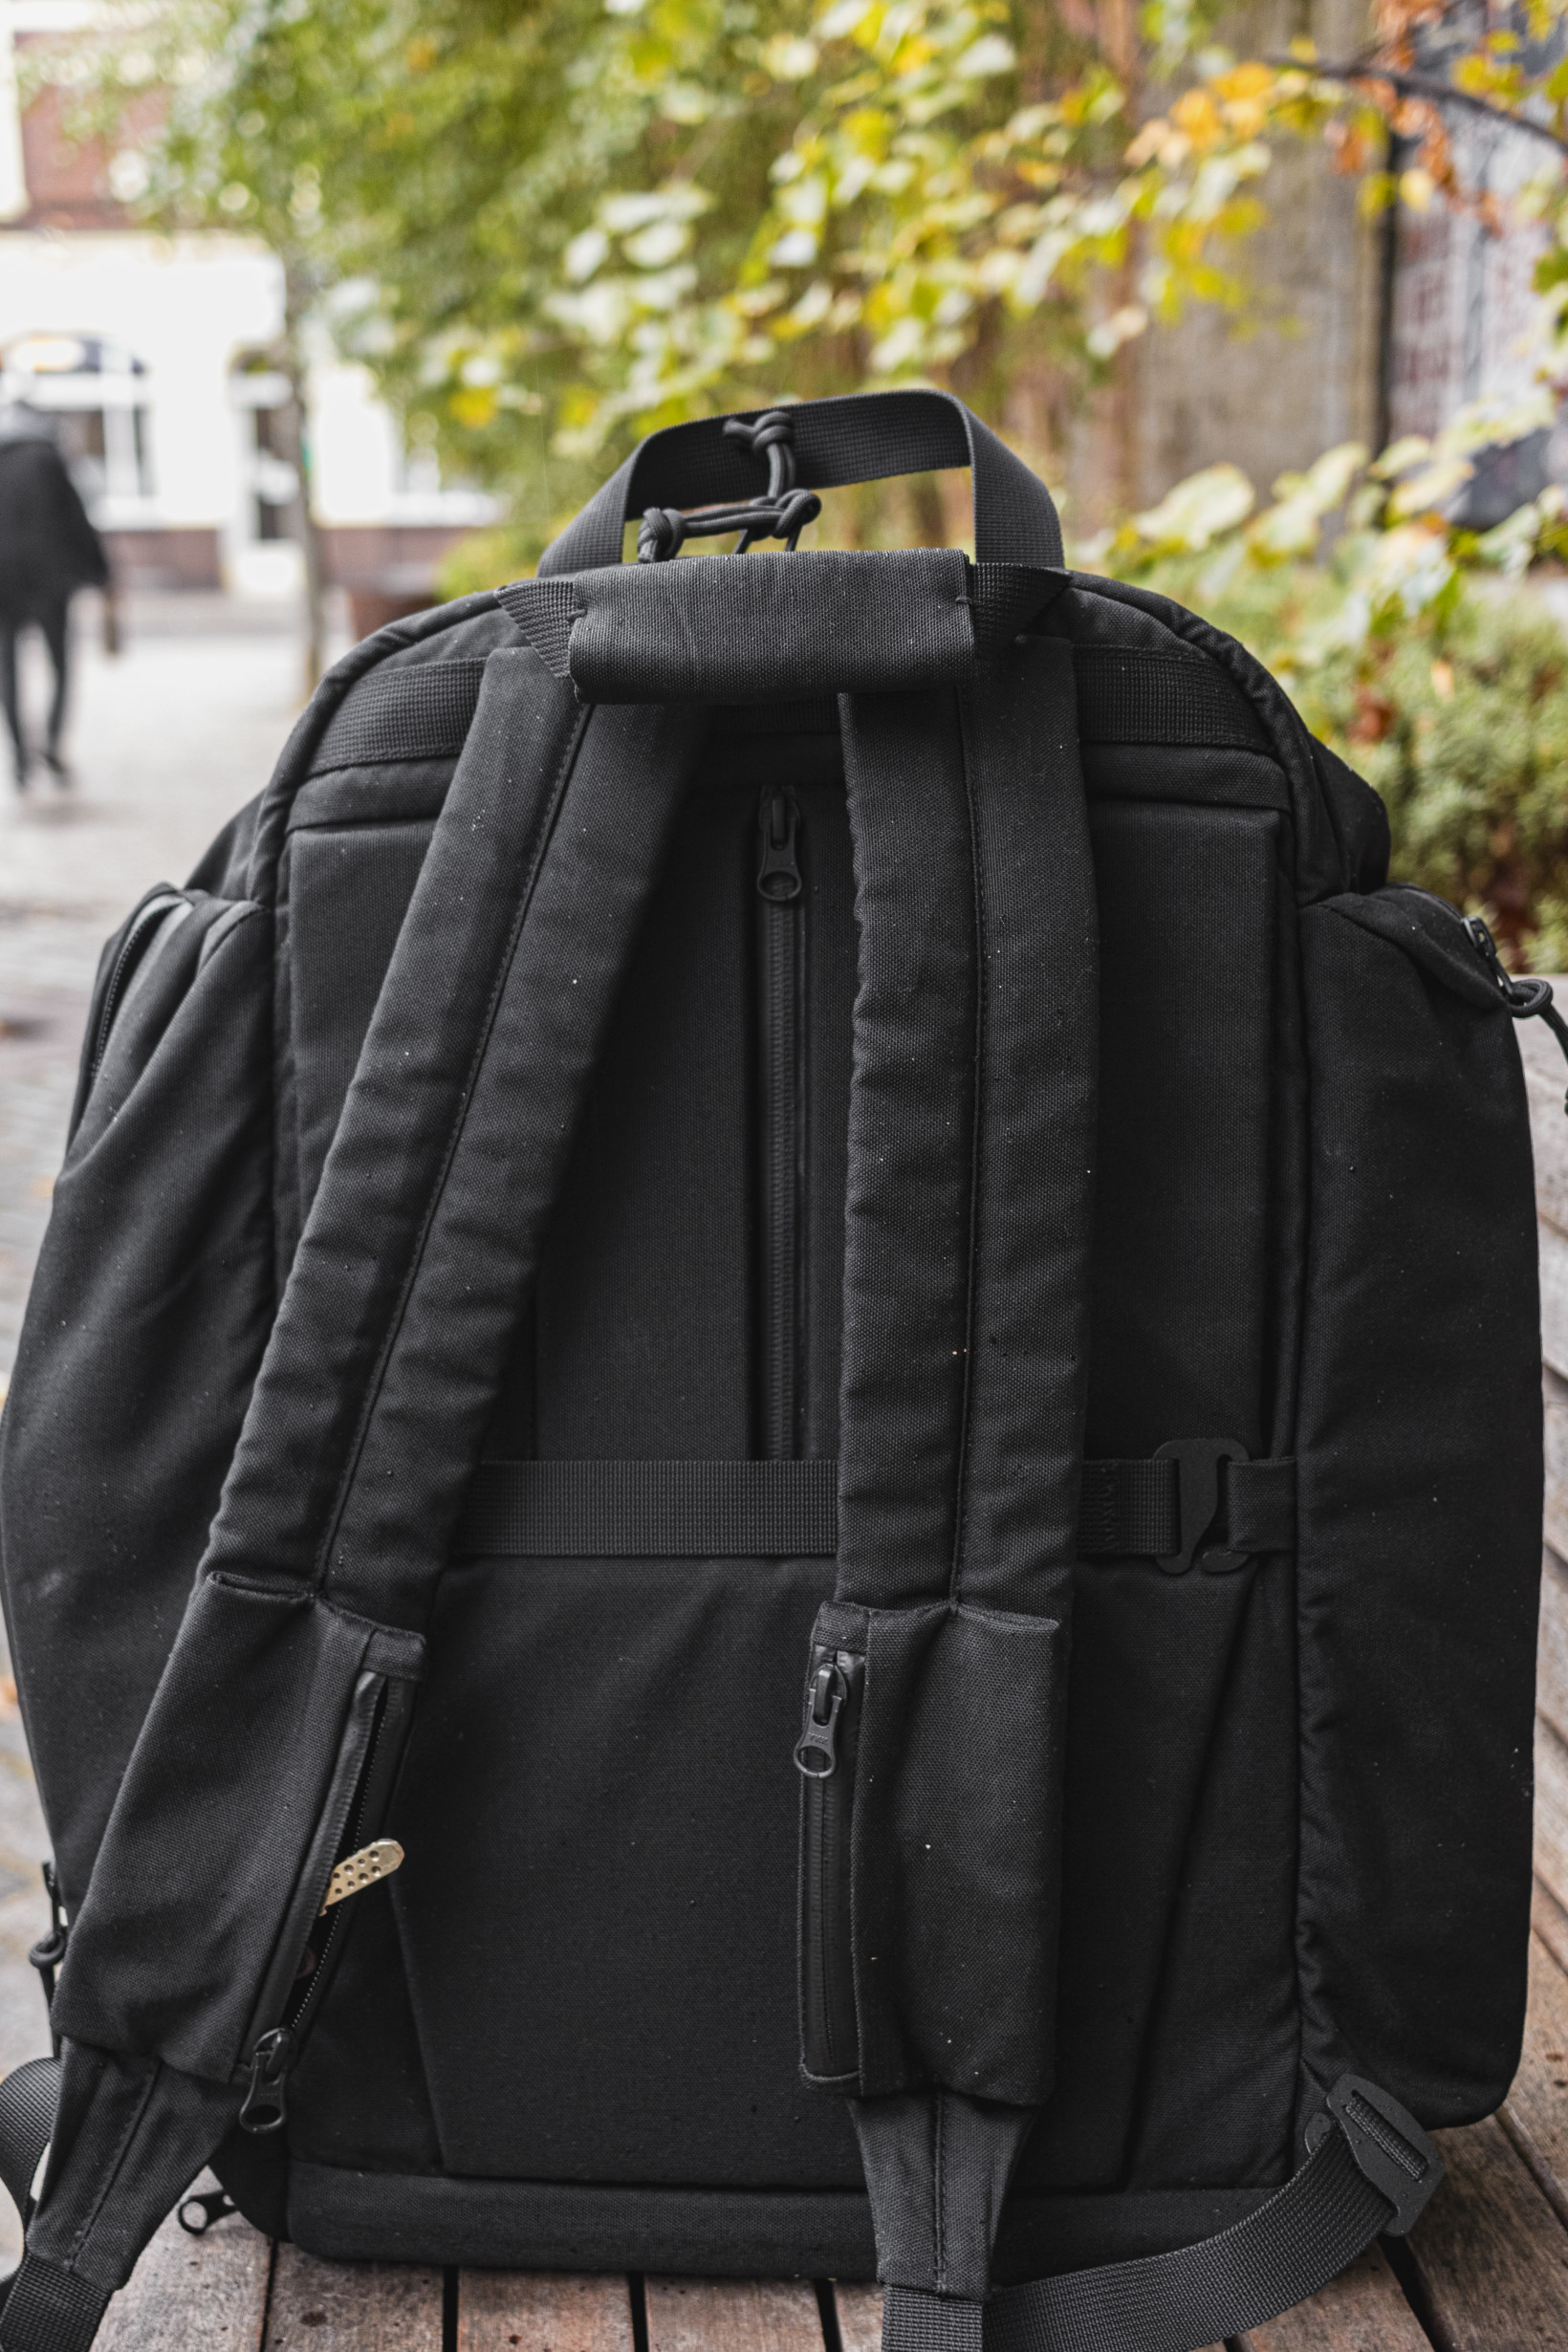 The A model backpack comes with secret pockets and a strap for carrying with rolling luggage